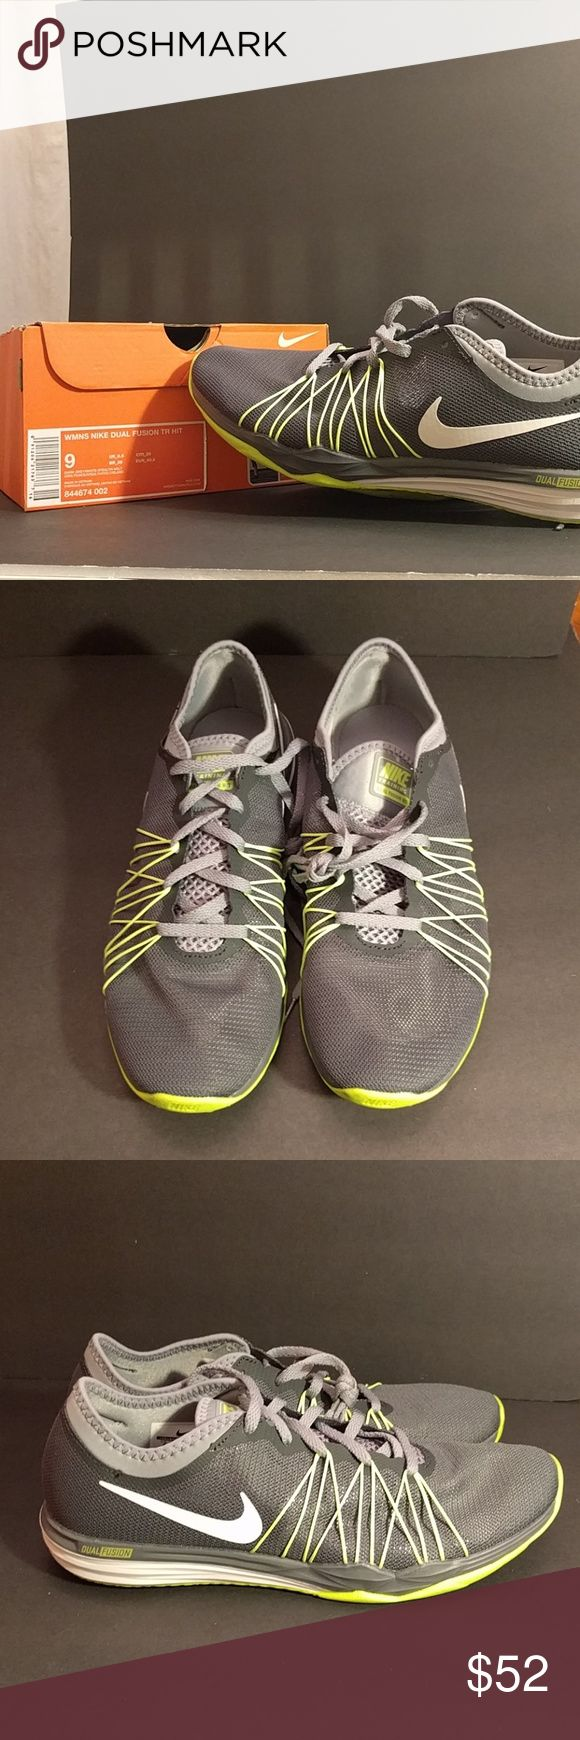 Nike Dual Fusion shoes grey NWT in the box. Neon yellow accents. Dual Fusion shoe 9 Nike Shoes Athletic Shoes